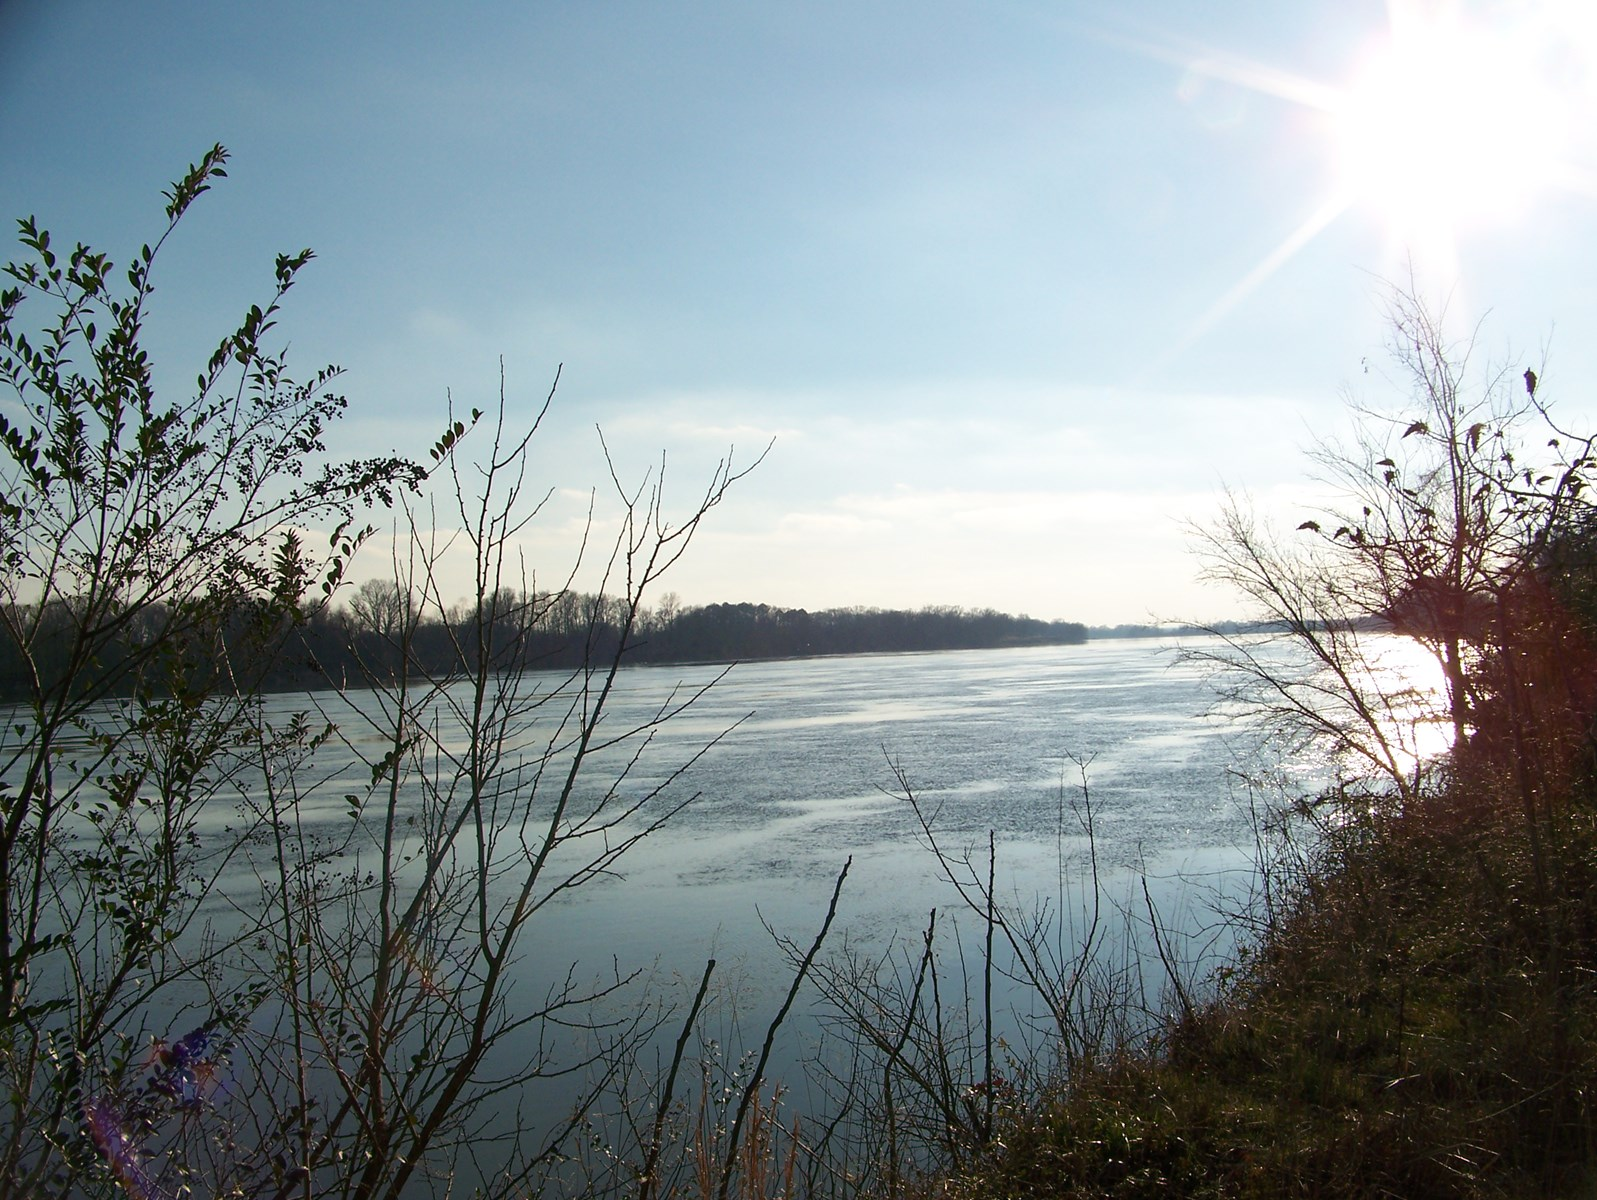 LAND FOR SALE ON THE TN RIVER - RIVER FRONT LAND, RV CAMPING